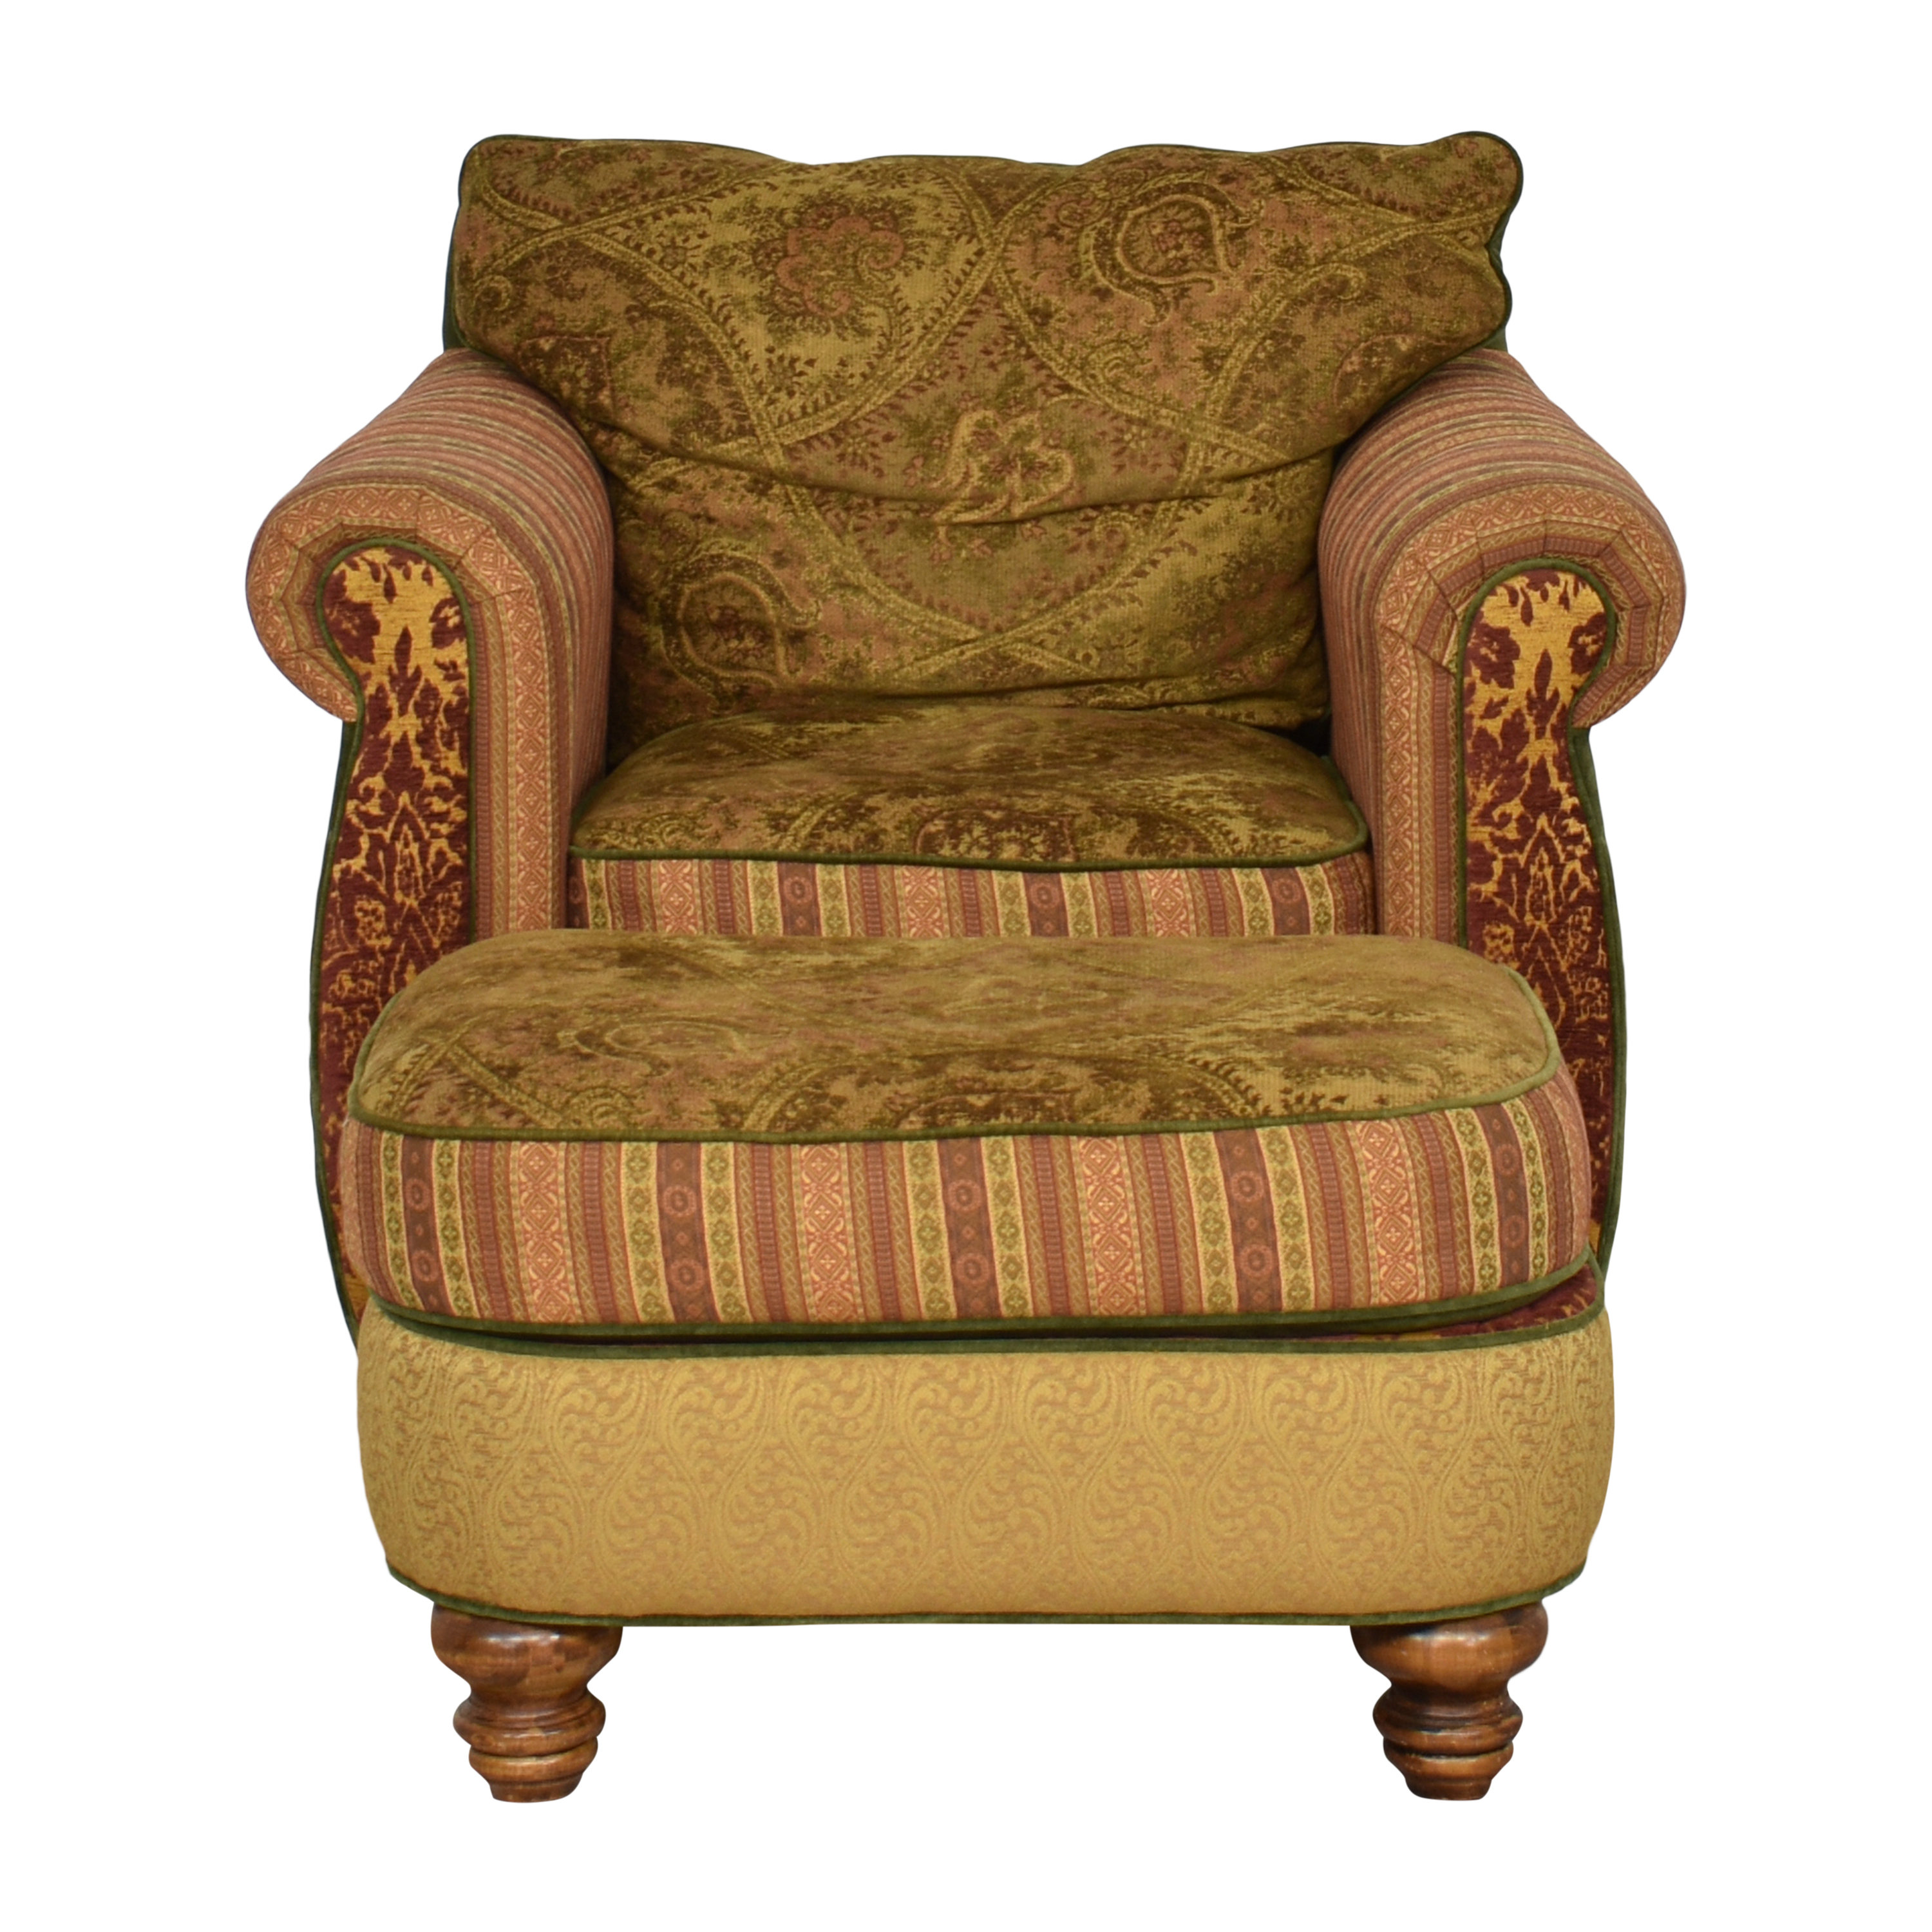 Kincaid Furniture Kincaid Furniture Accent Chair with Ottoman for sale